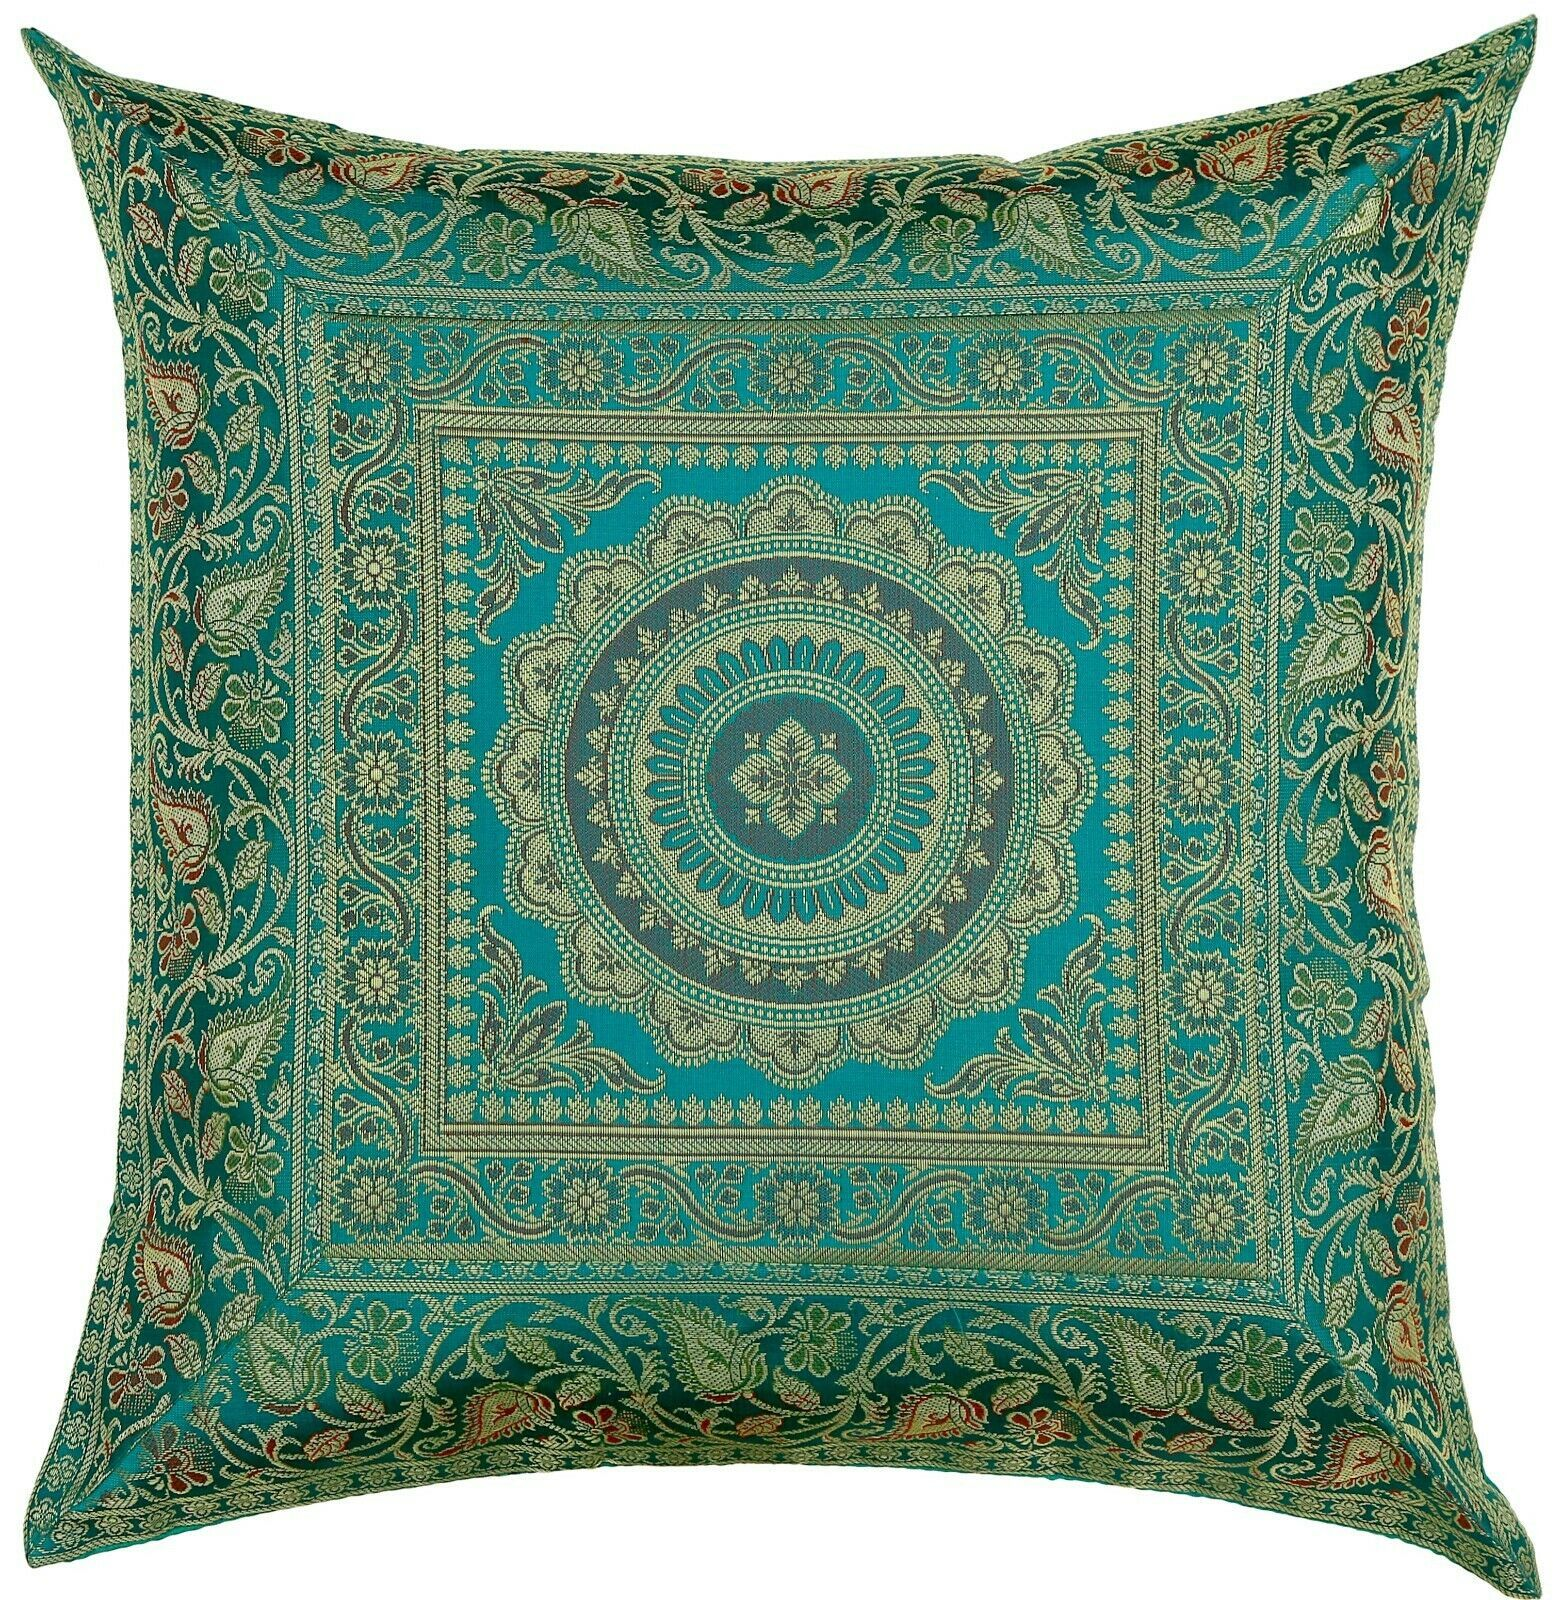 "Primary image for 16"" x 16"" Teal Mandala Silk Brocade Cushion Cover Pillow Throw Sofa Home Decor"